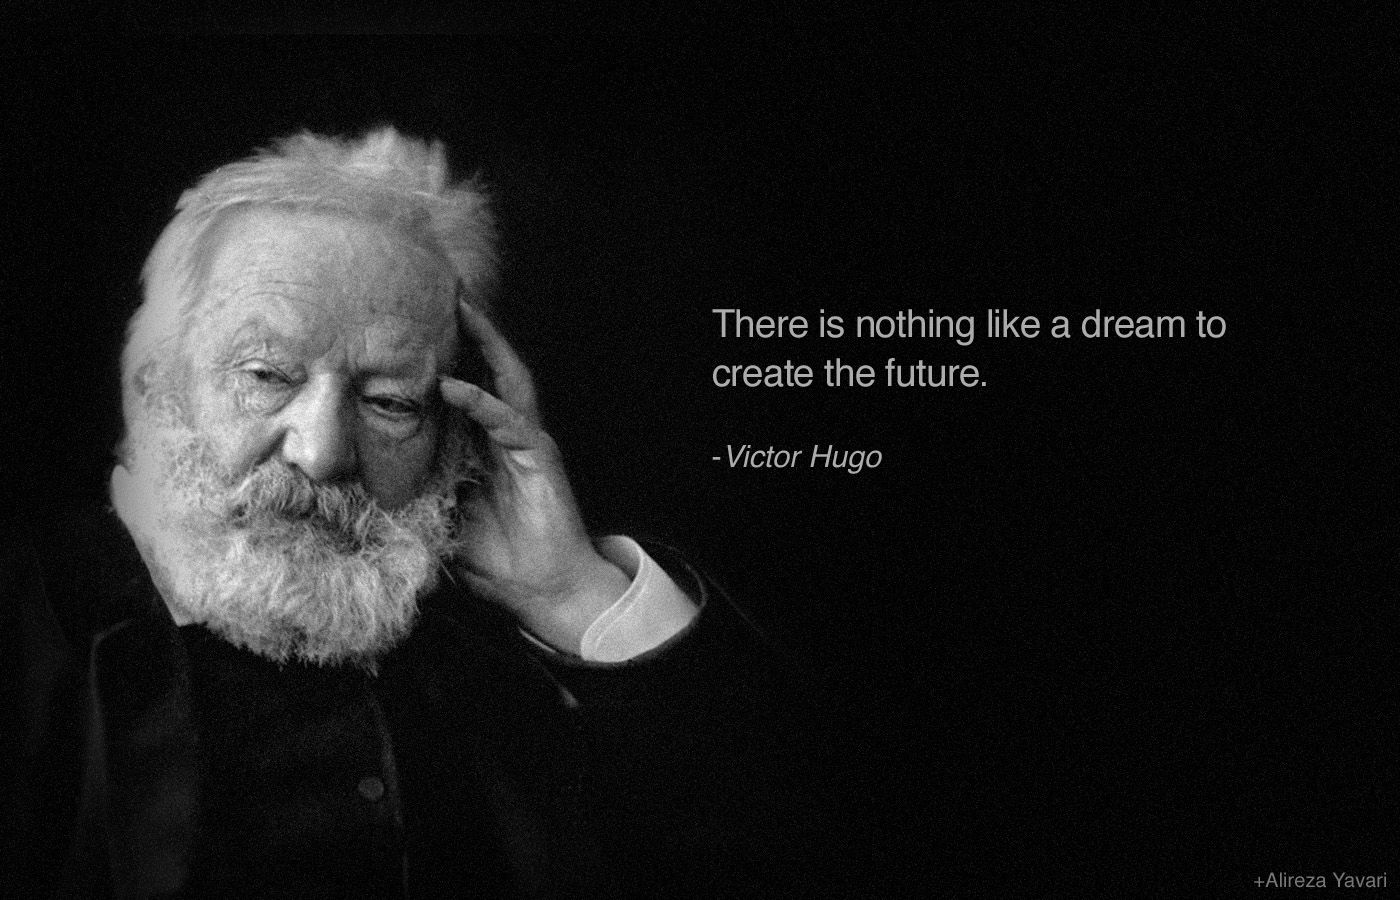 VICTOR HUGO, Author Of The Hunchback Of Notre Dame & Les